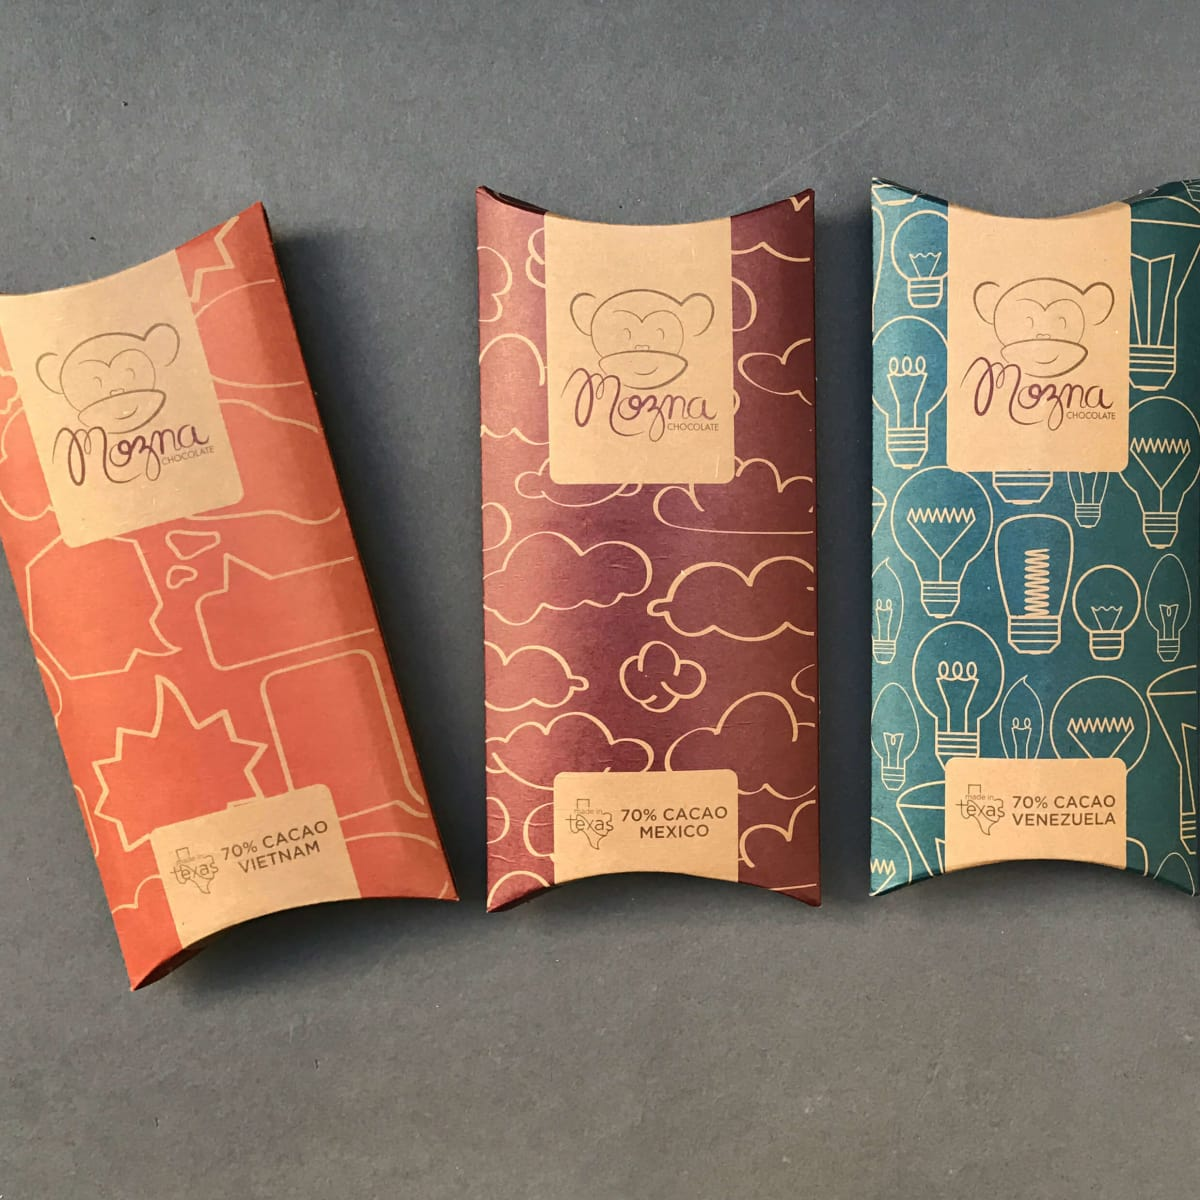 Mozna Chocolate bars